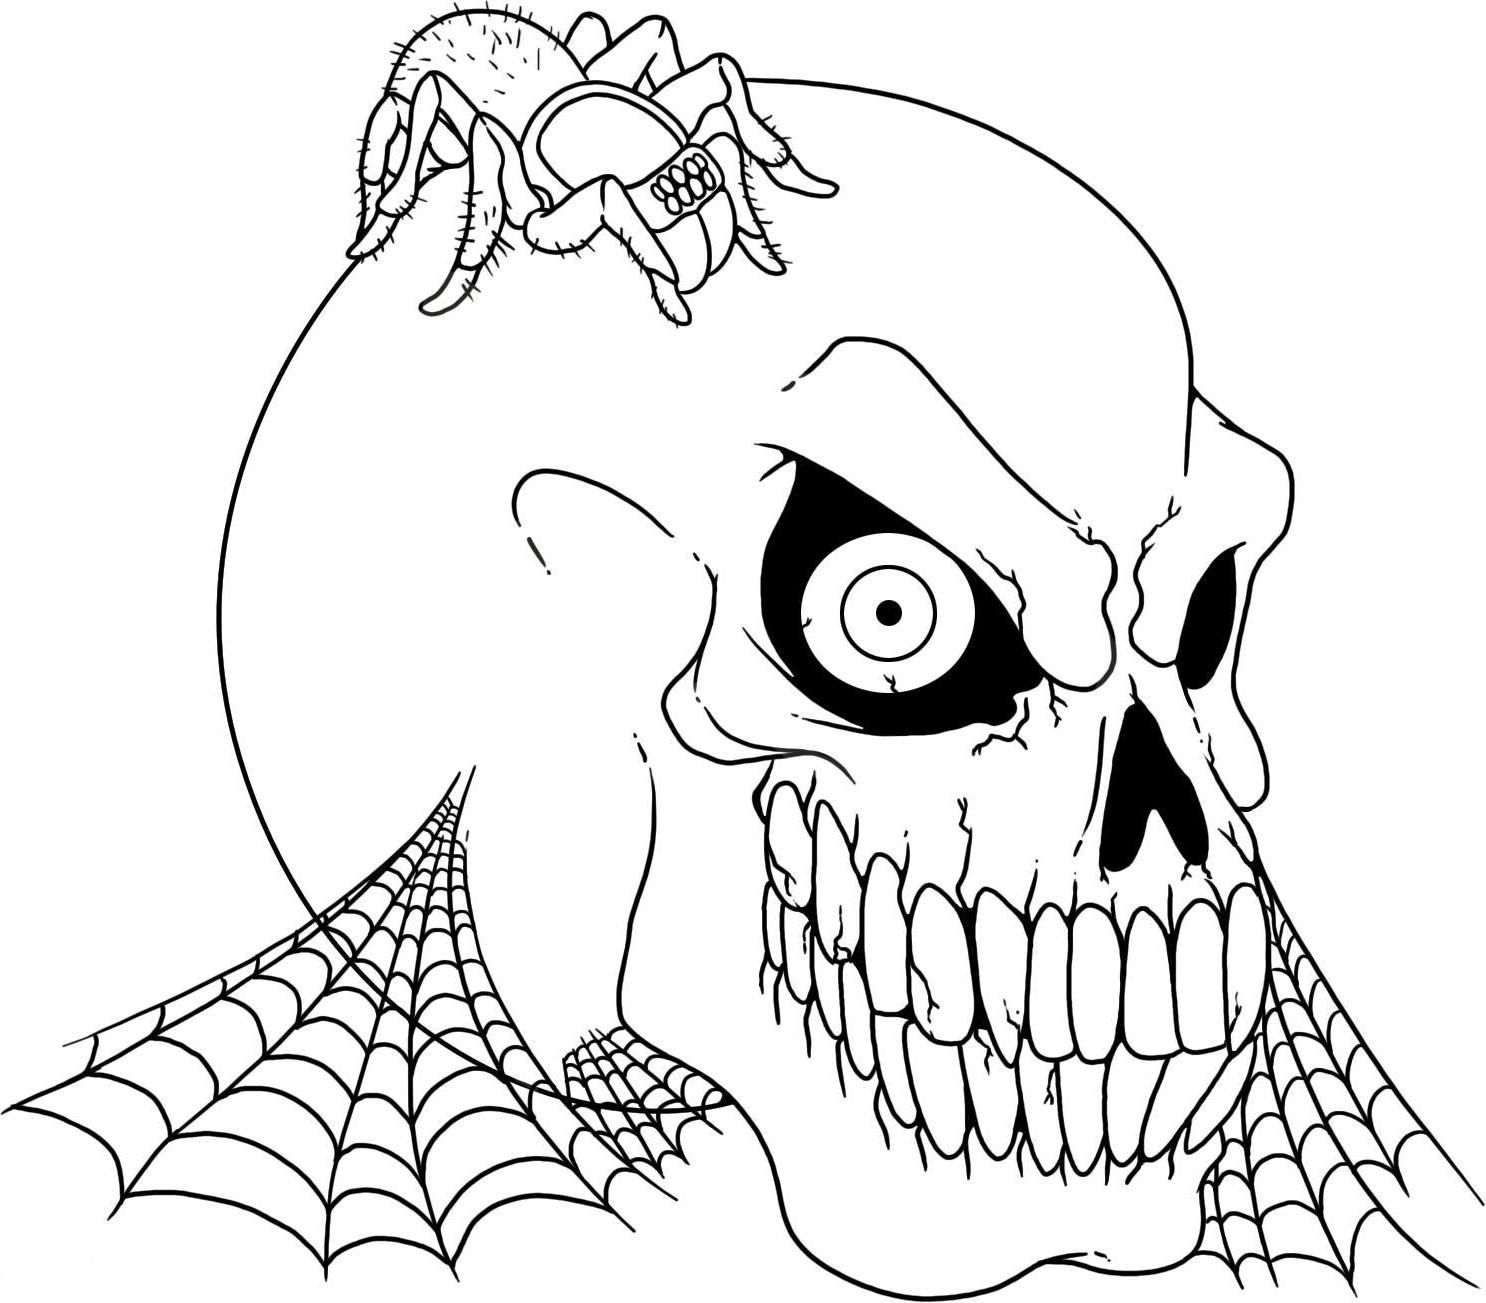 Scary halloween skull and spider coloring pages spider coloring pages halloween skull coloring pages free online coloring pages and printable coloring